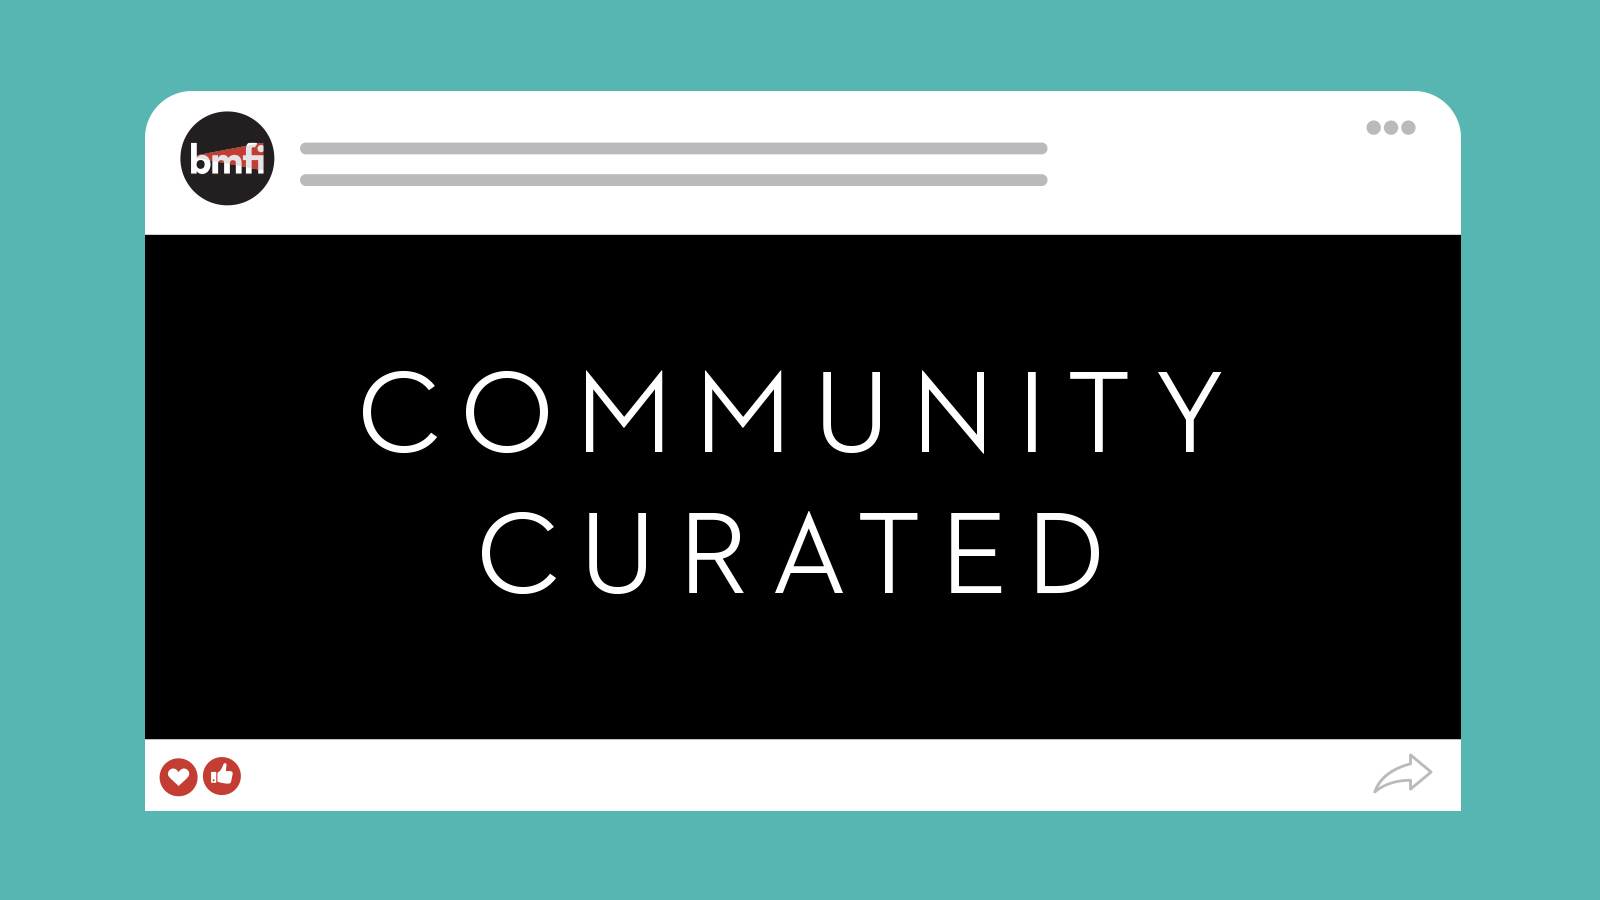 community curated